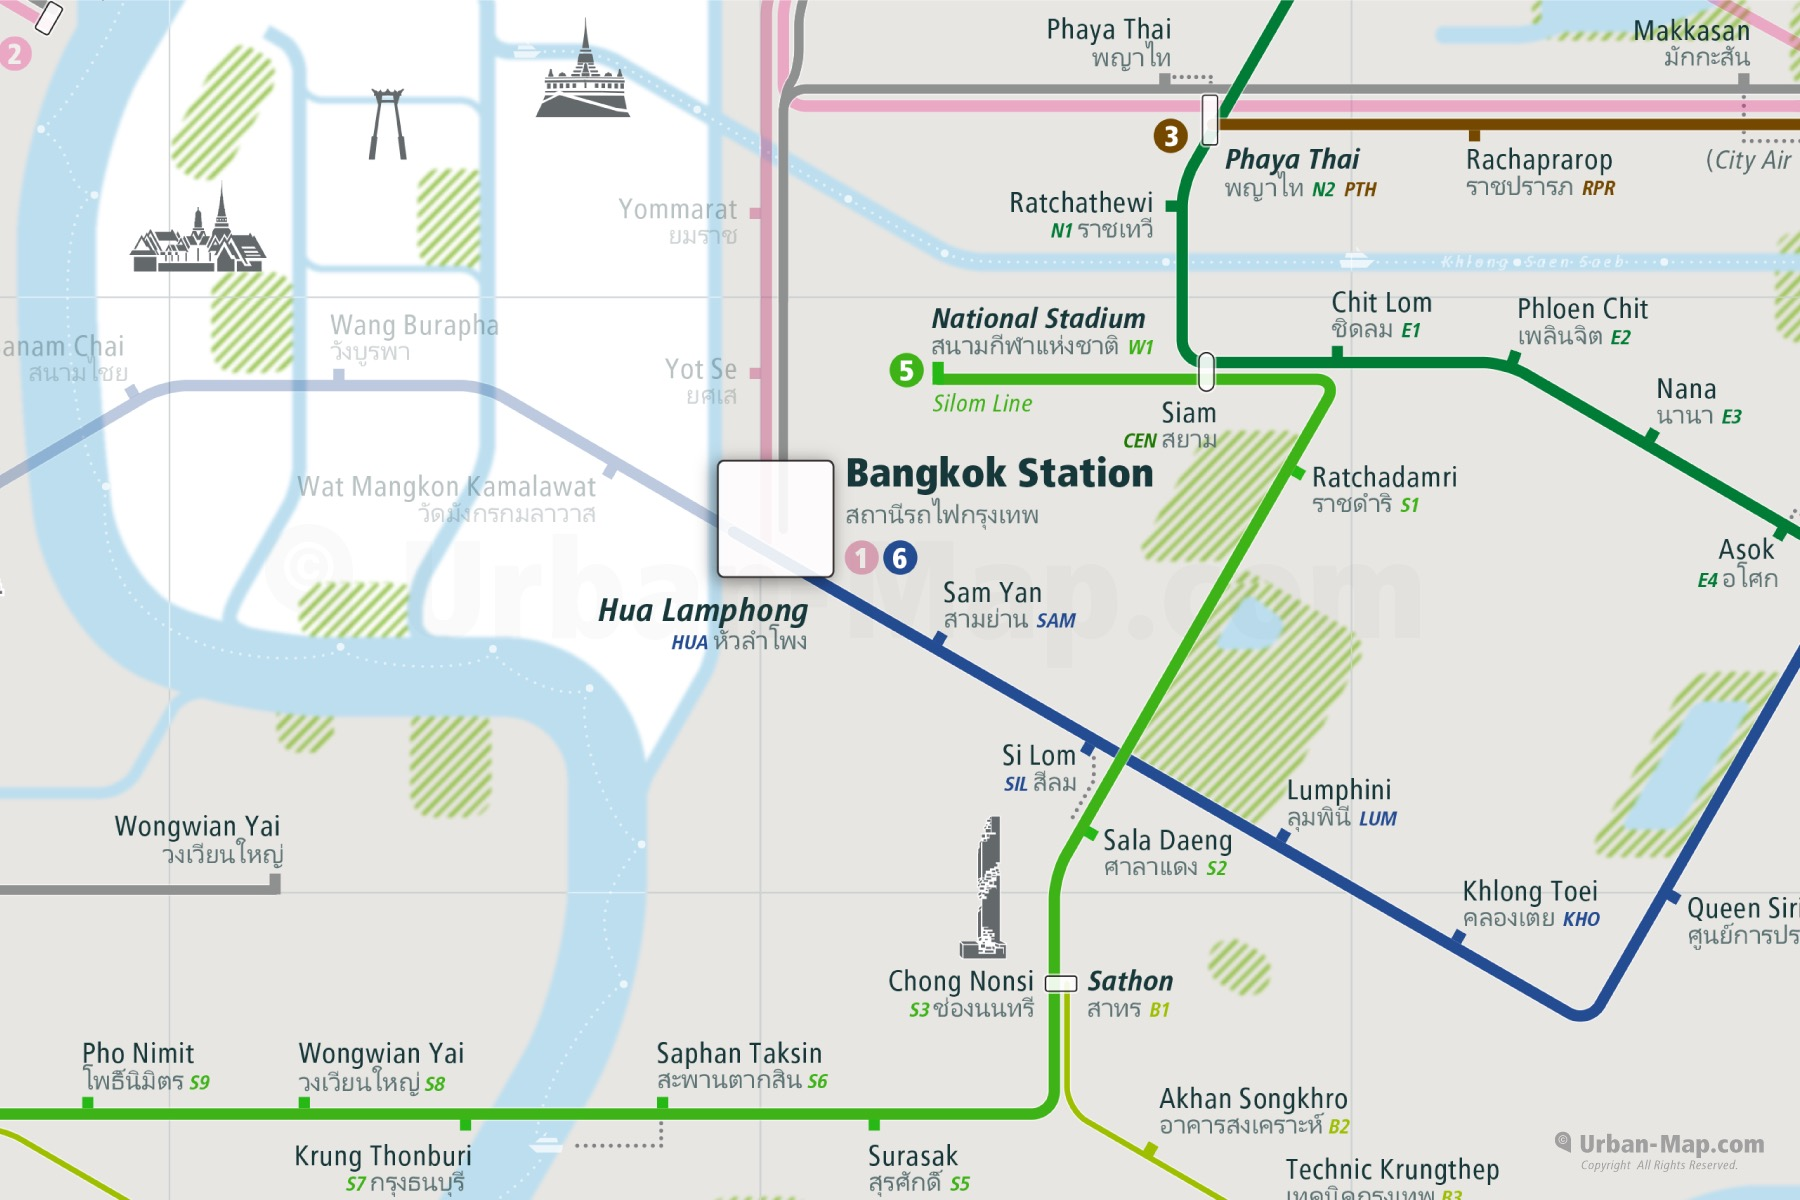 Bangkok City Rail Map shows the train and public transportation routes of metro, BRT Bus Rapid Transport, Airport Link - Close-Up